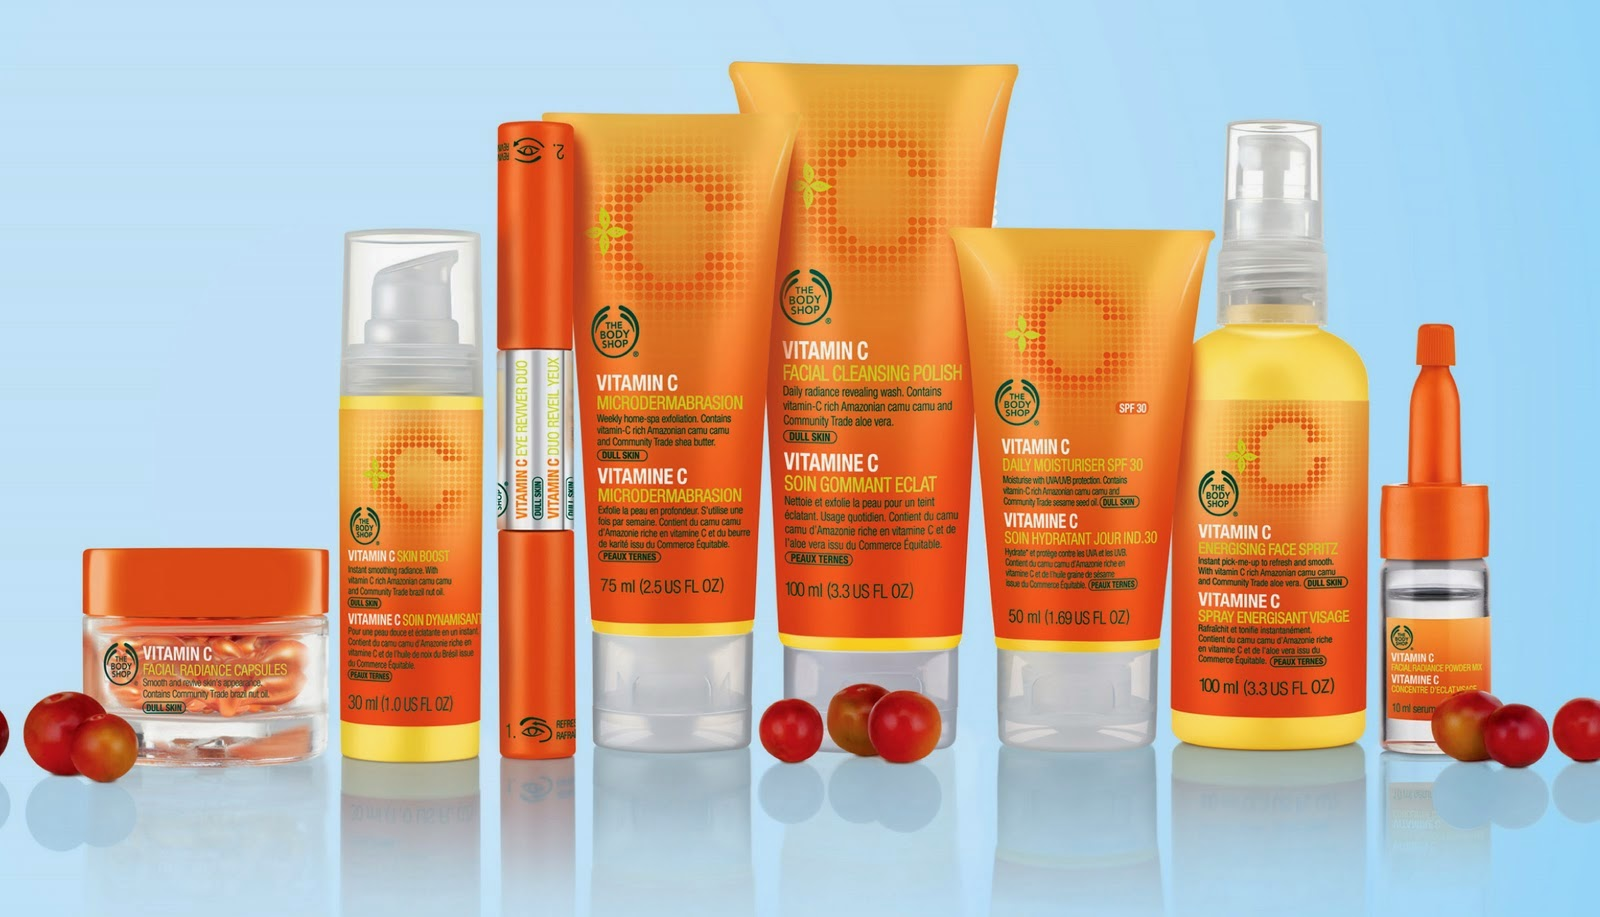 The Body Shop Vitamin C Range Review Beauty Redemption Ovale Hair Hydrate And Enhance Your Skins Natural Radiance By Adding Boosting To Daily Skin Care Regimen Encourage Collagen Production